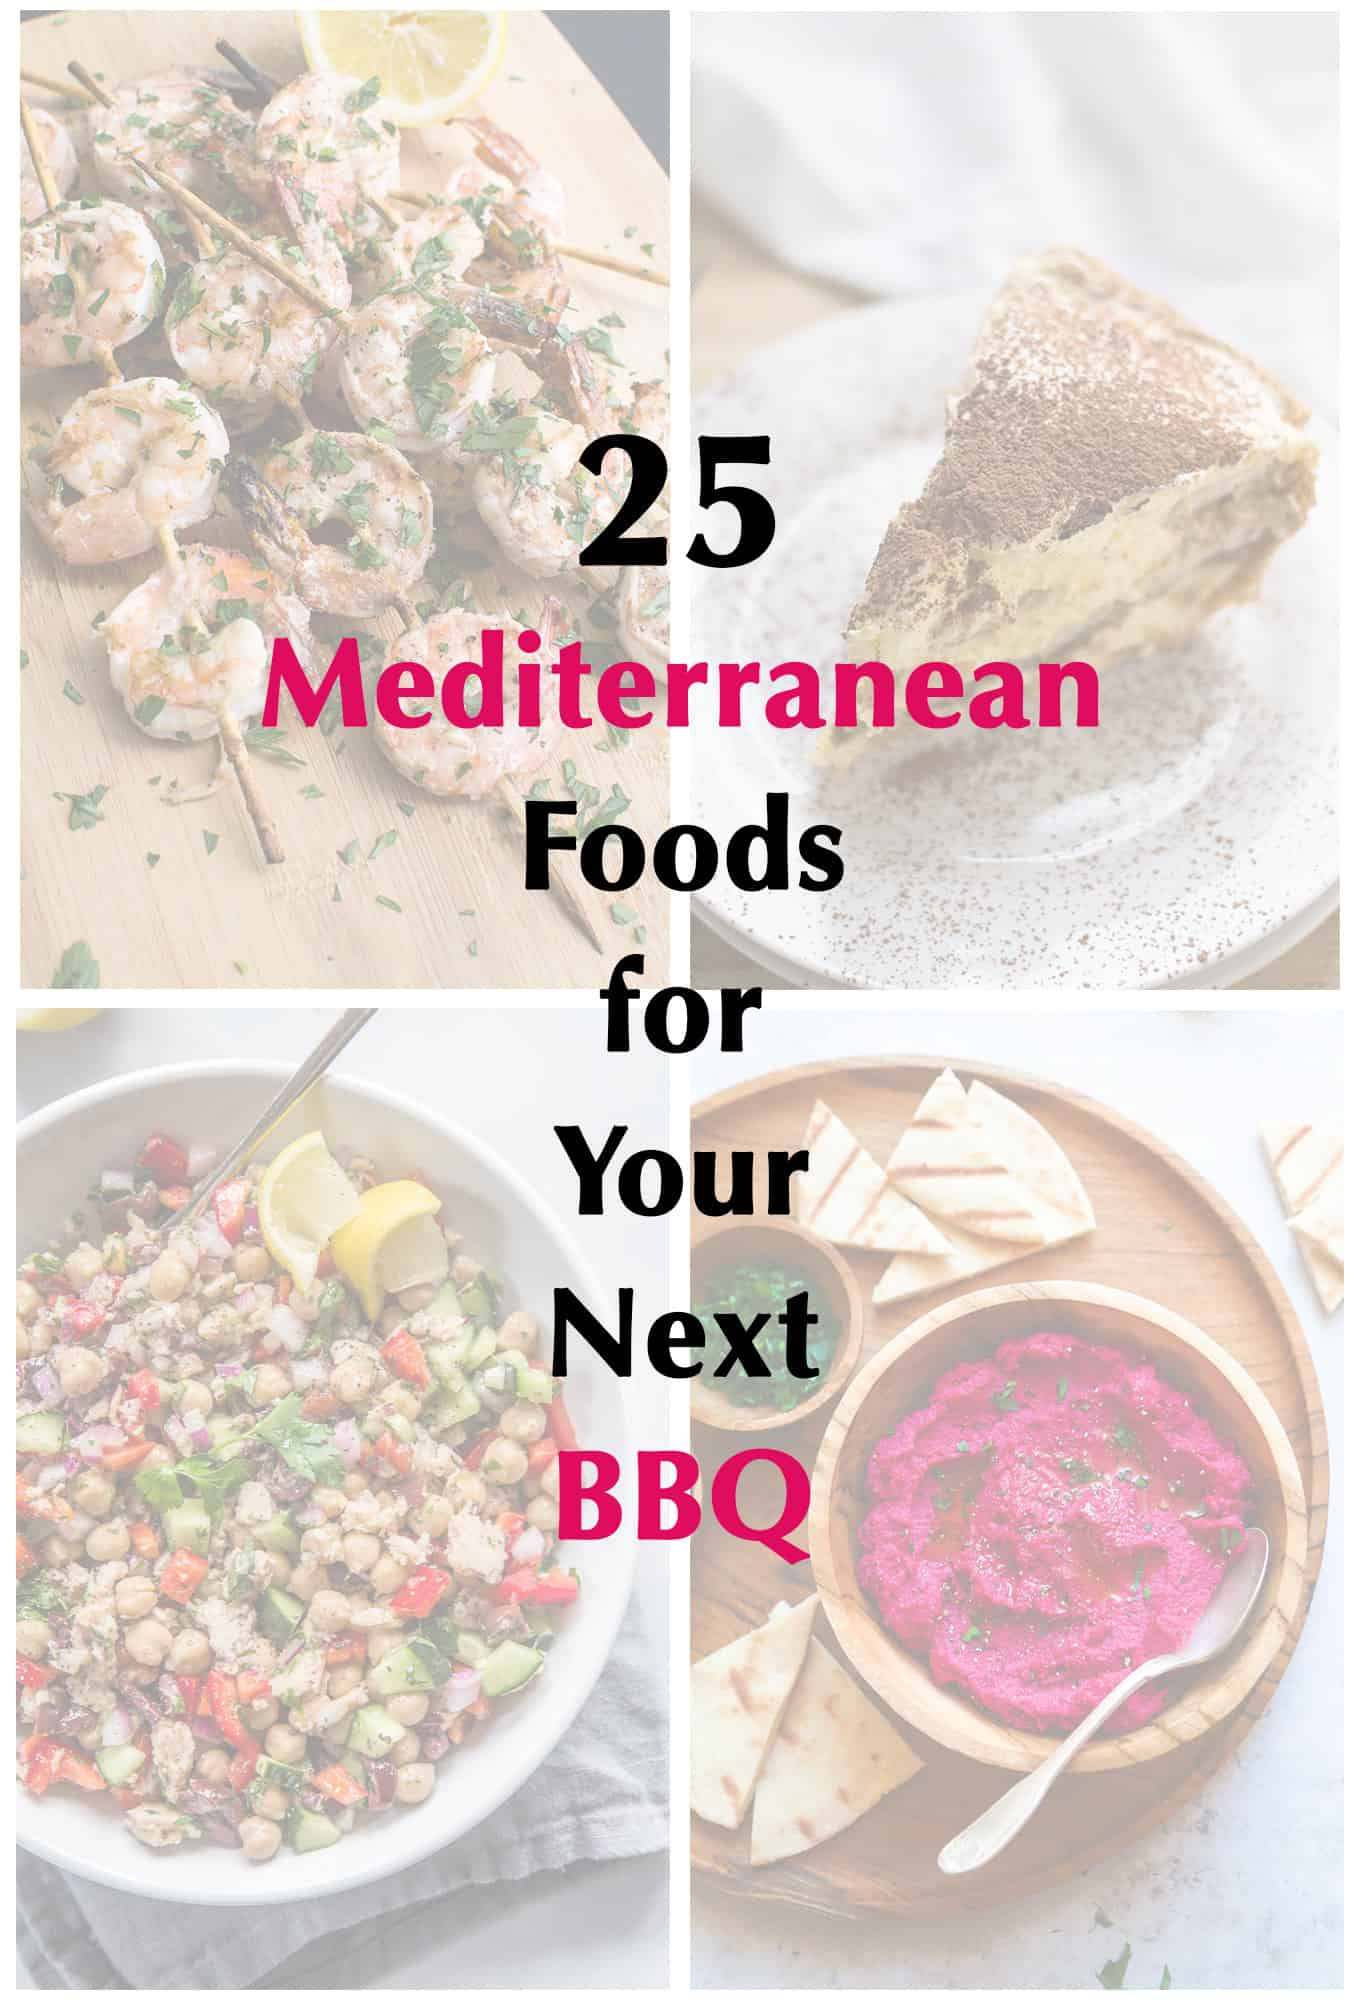 25 Mediterranean Foods for Your Next BBQ | omgfood.com